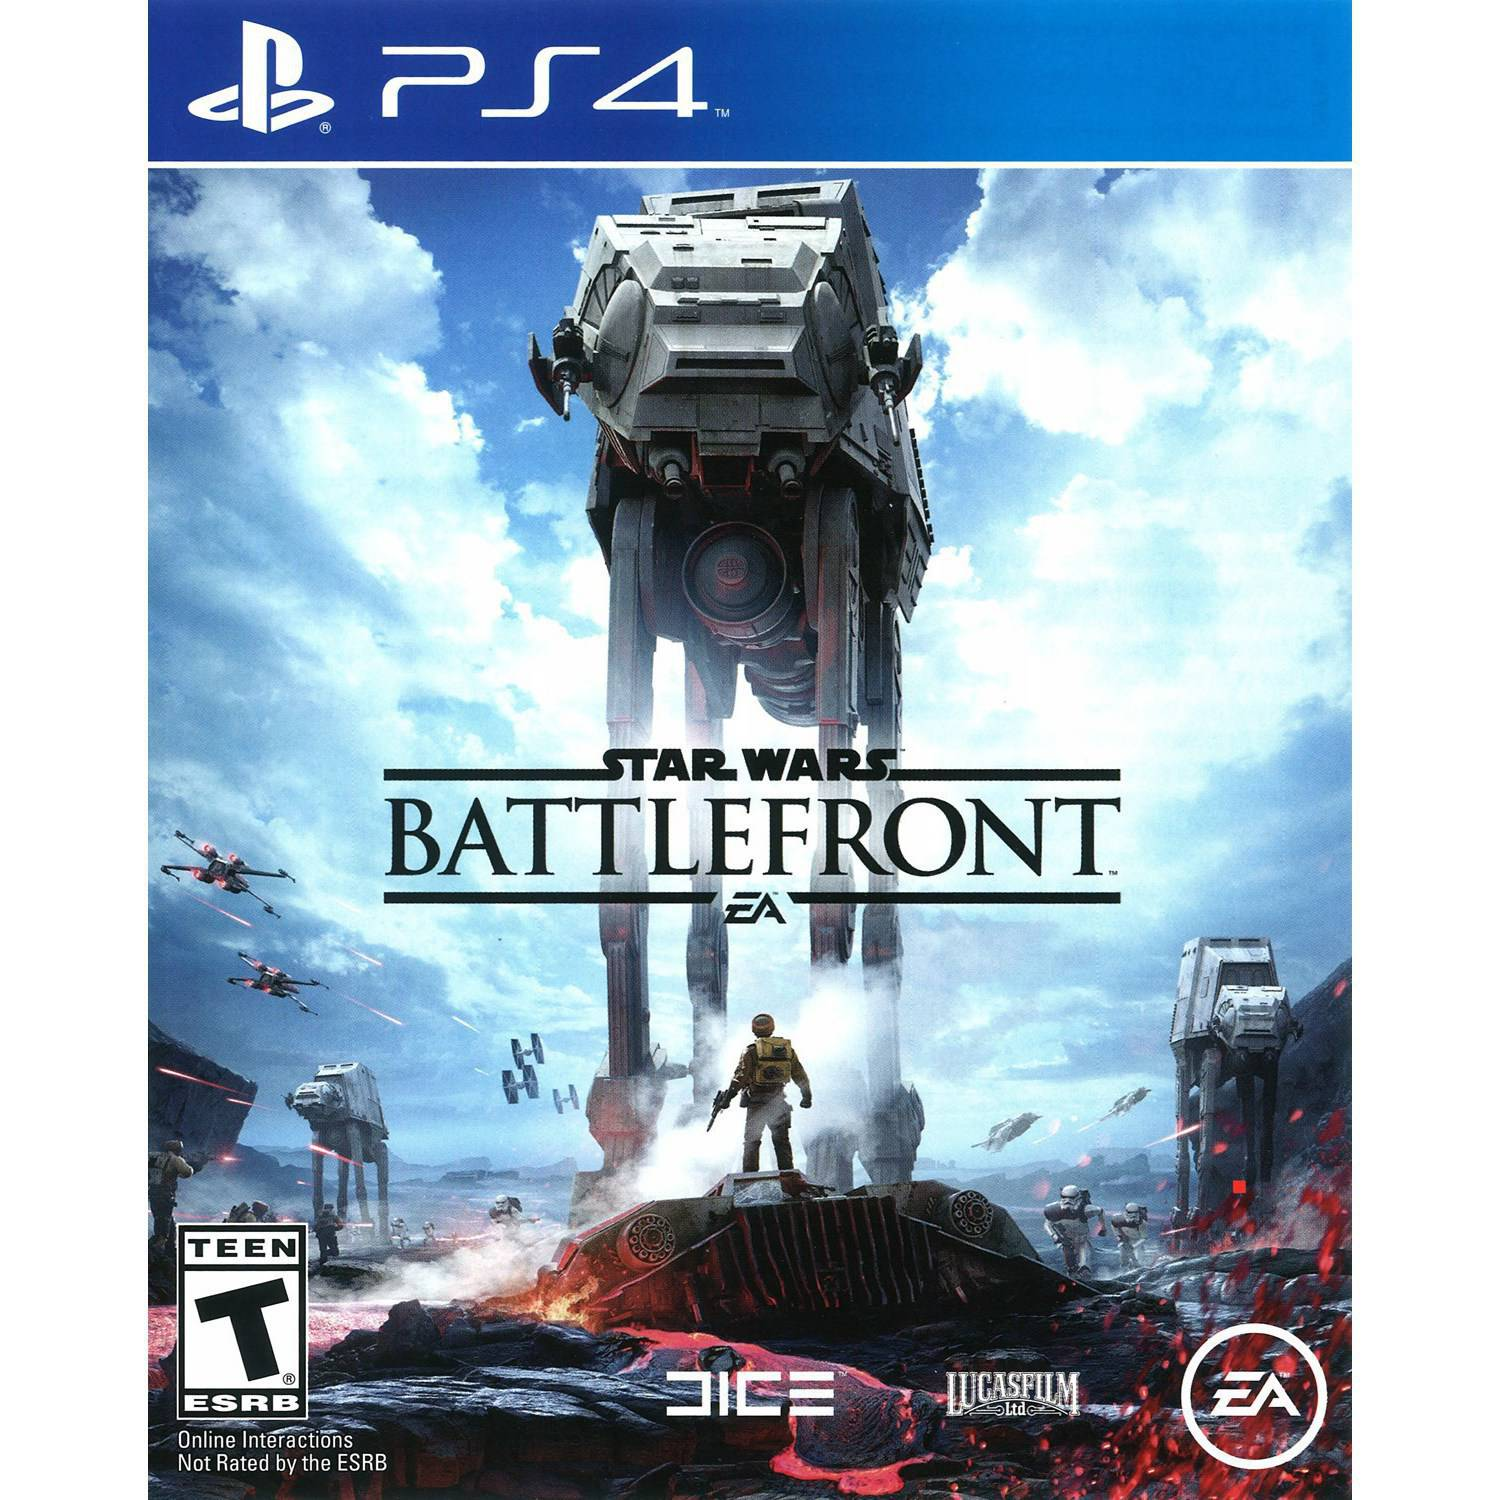 Star Wars Battlefront, Electronic Arts, PlayStation 4, 014633368680